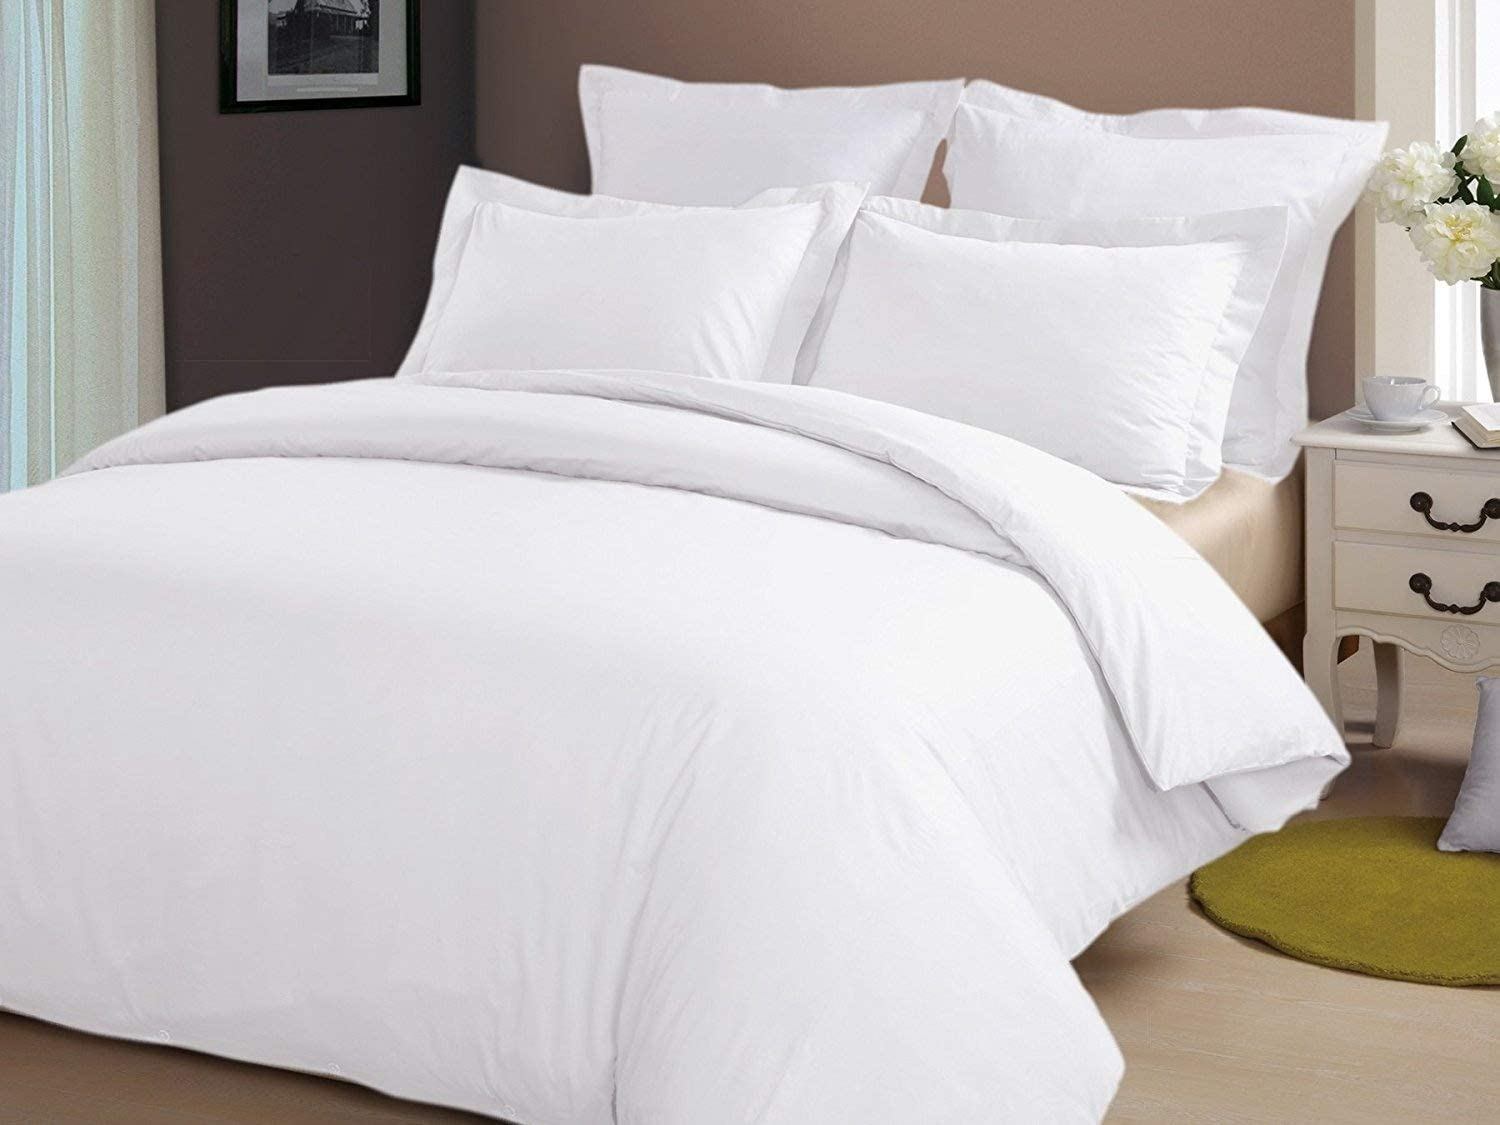 """Precious Star Linen Hotel Quality 800 Thread Count Egyptian Cotton 3pc Duvet Cover Set Zipper Closer Oversized Super King Size (120"""" x 98"""") With Corner Ties (White Solid)"""